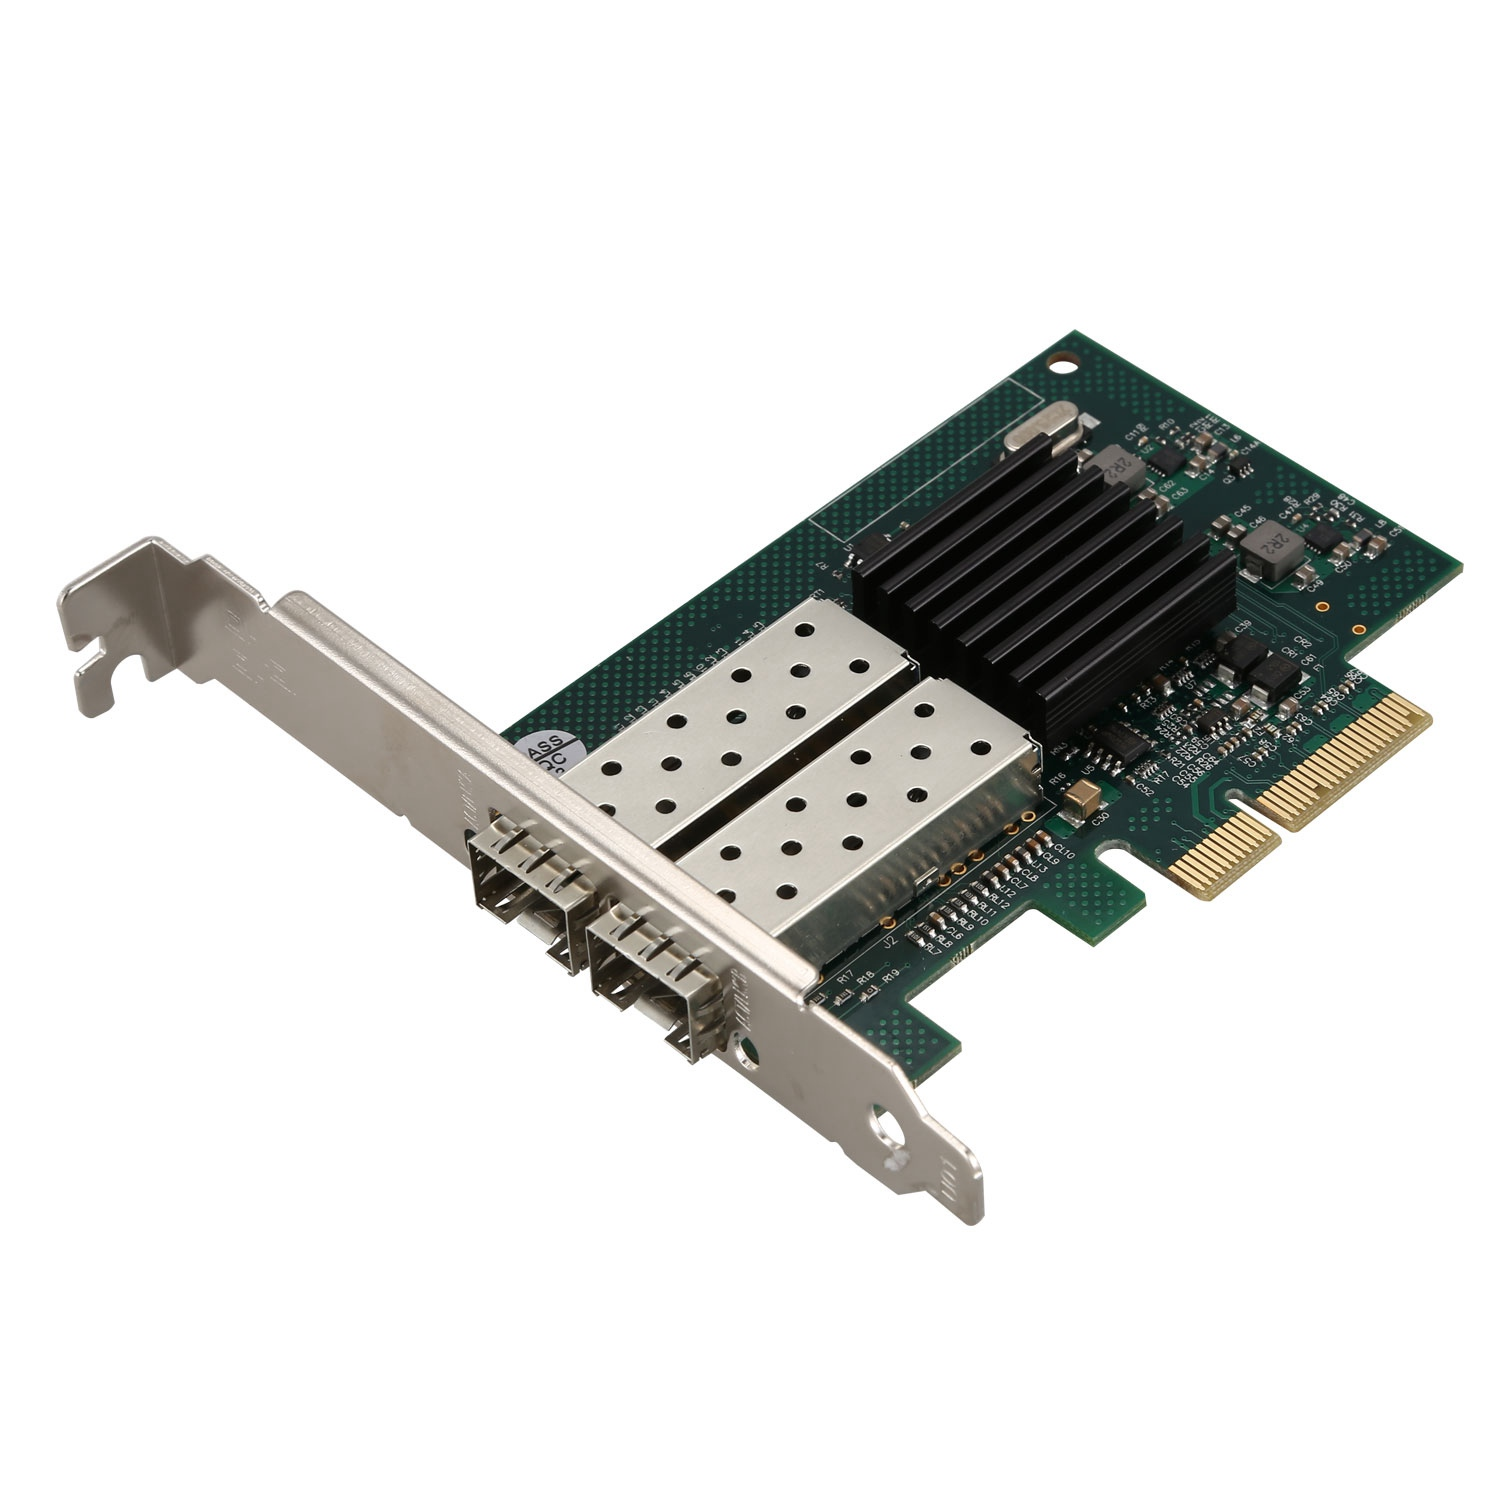 Network Card For Intel 82576 Chip 1G Gigabit Ethernet Converged Network Adapter (Nic), Dual Sfp Ports, Pci Express 2.0 X4